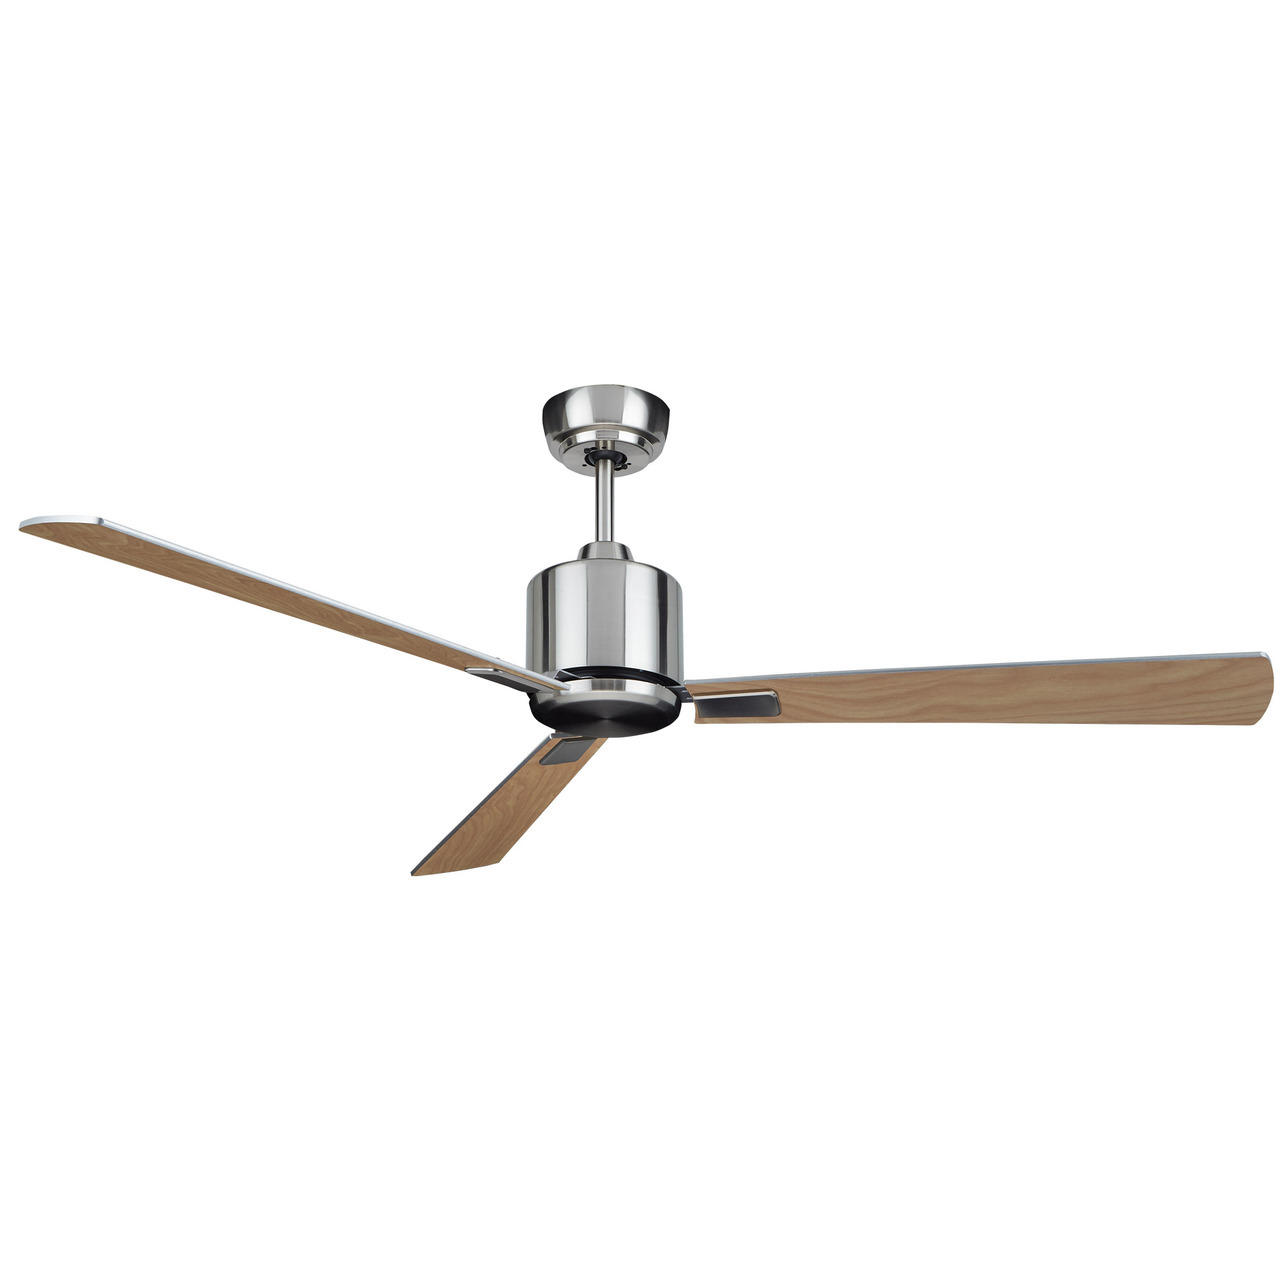 Dc Motor Ceiling Fans: KittyHawk Ceiling Fan Antique Brass 52in KittyHawk Ceiling Fan Silver 52in,Lighting